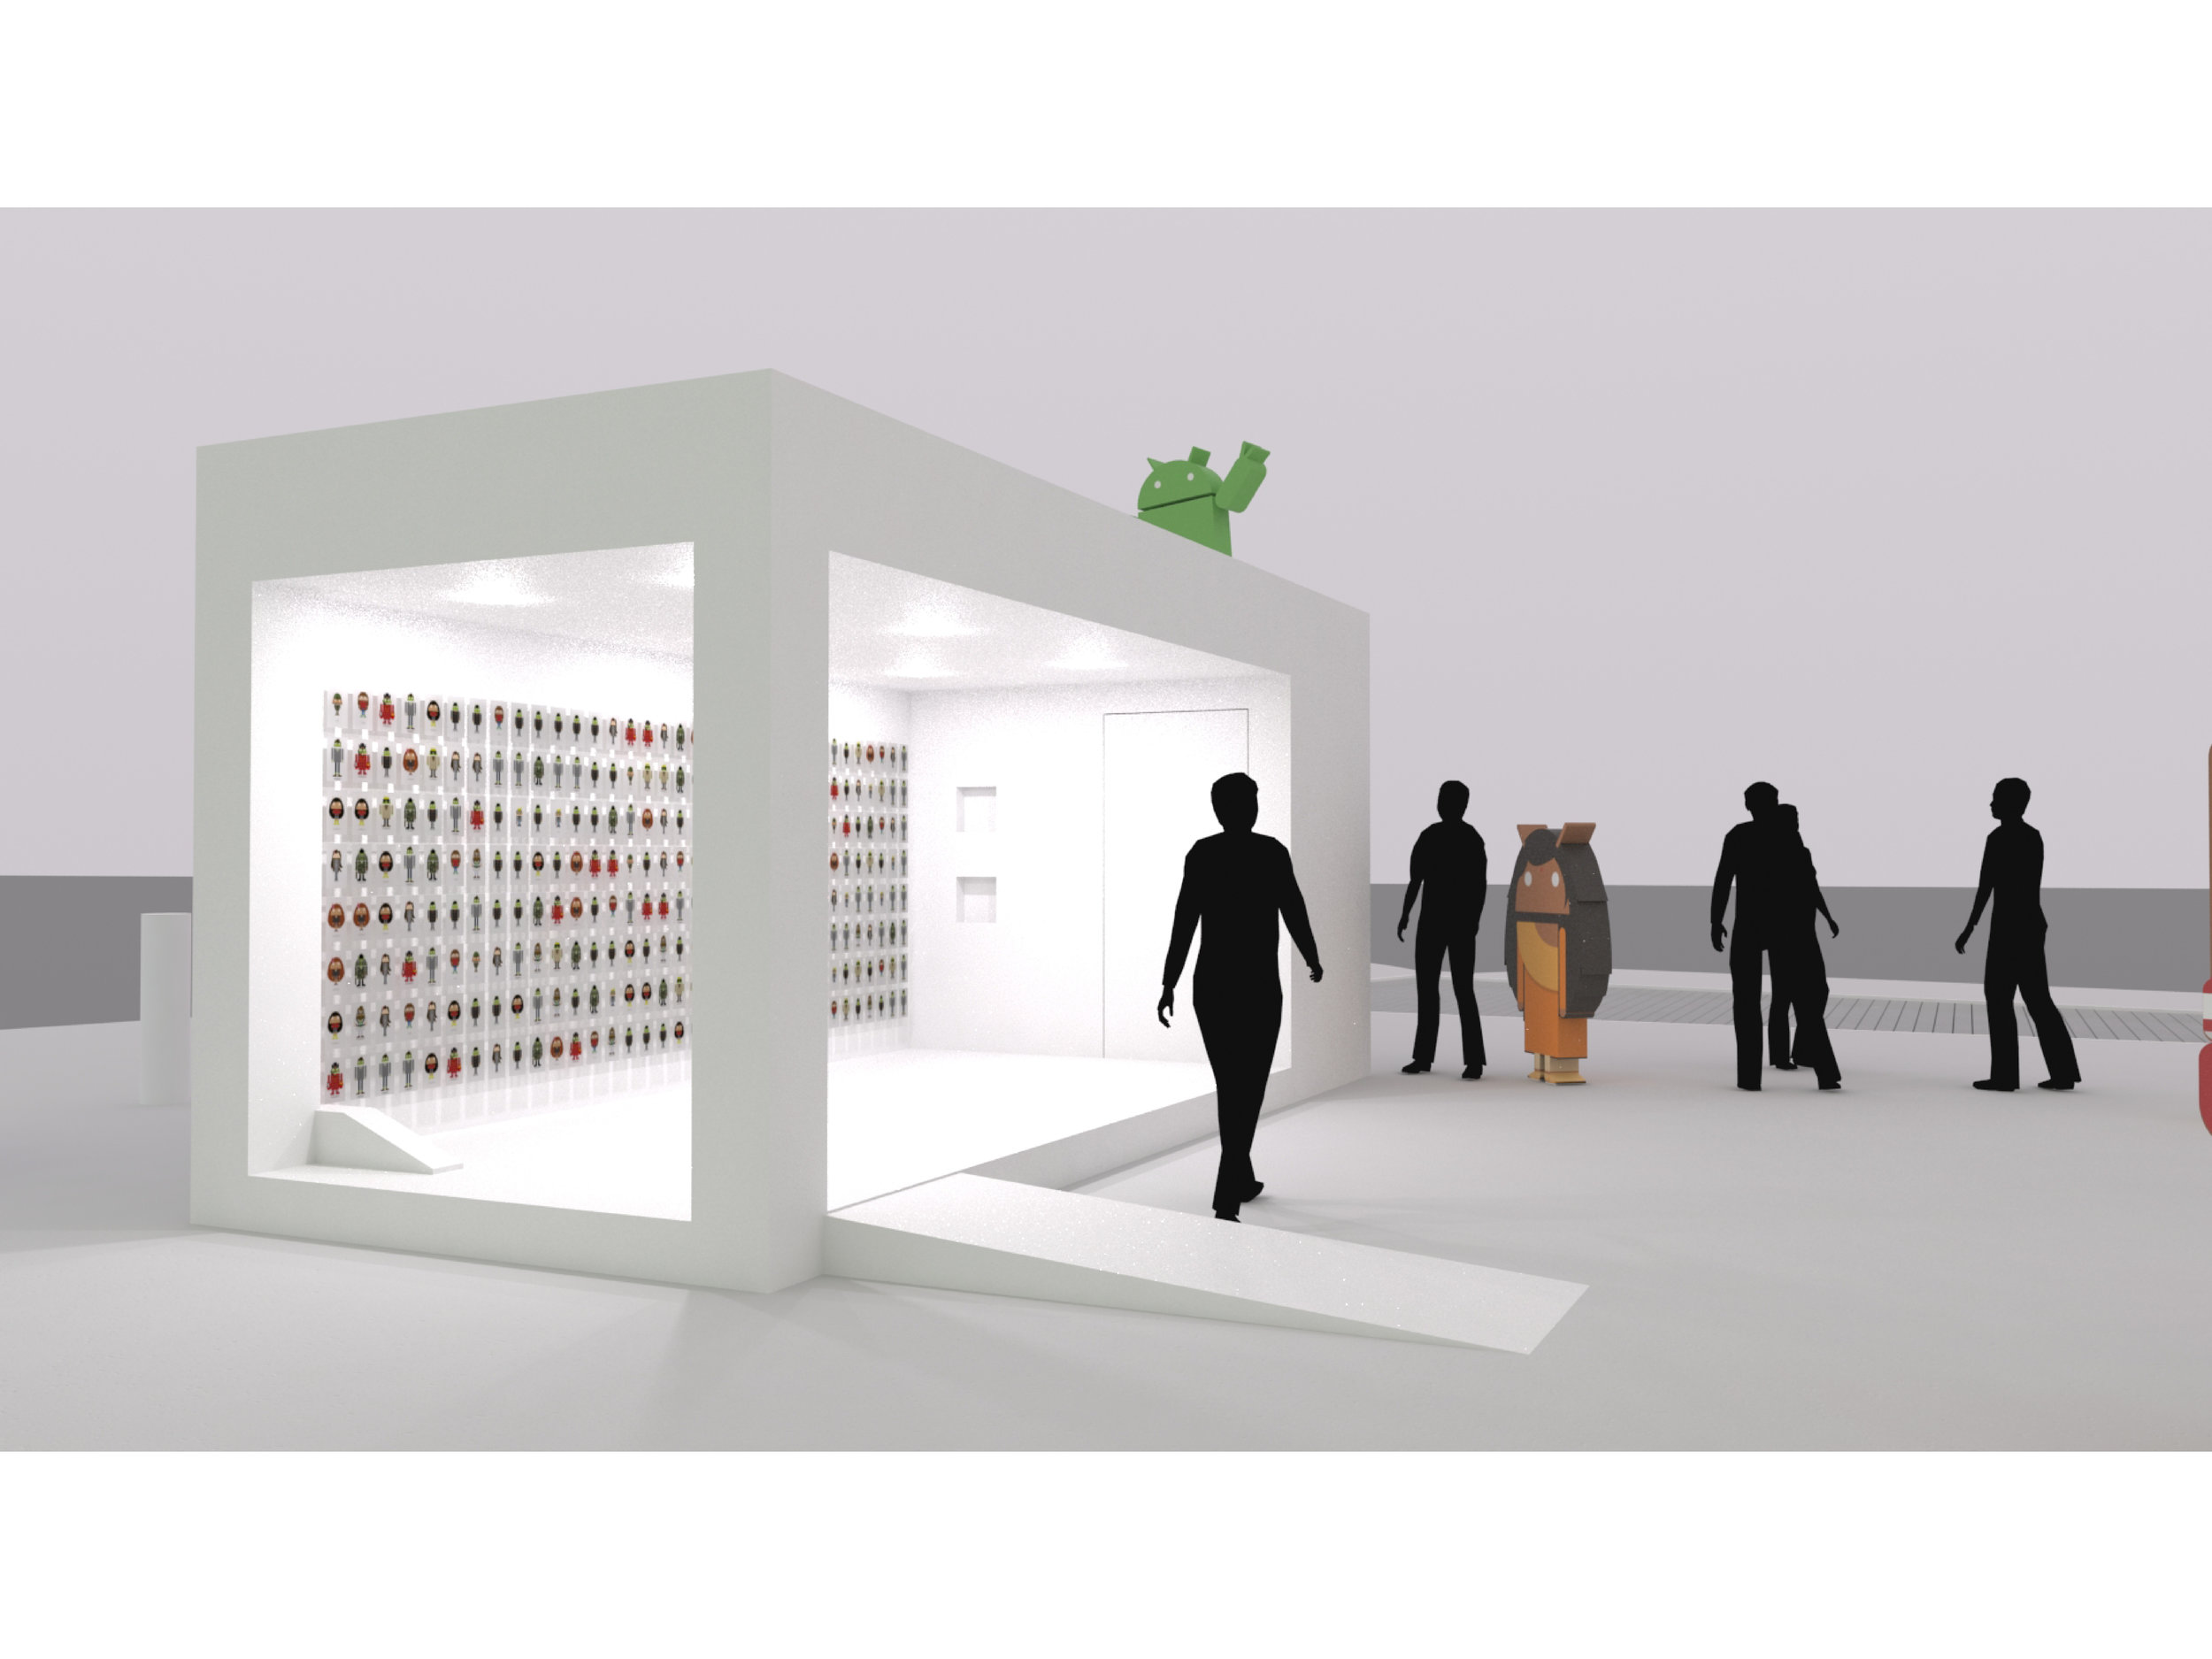 Exterior Rendering of Post Card Booth